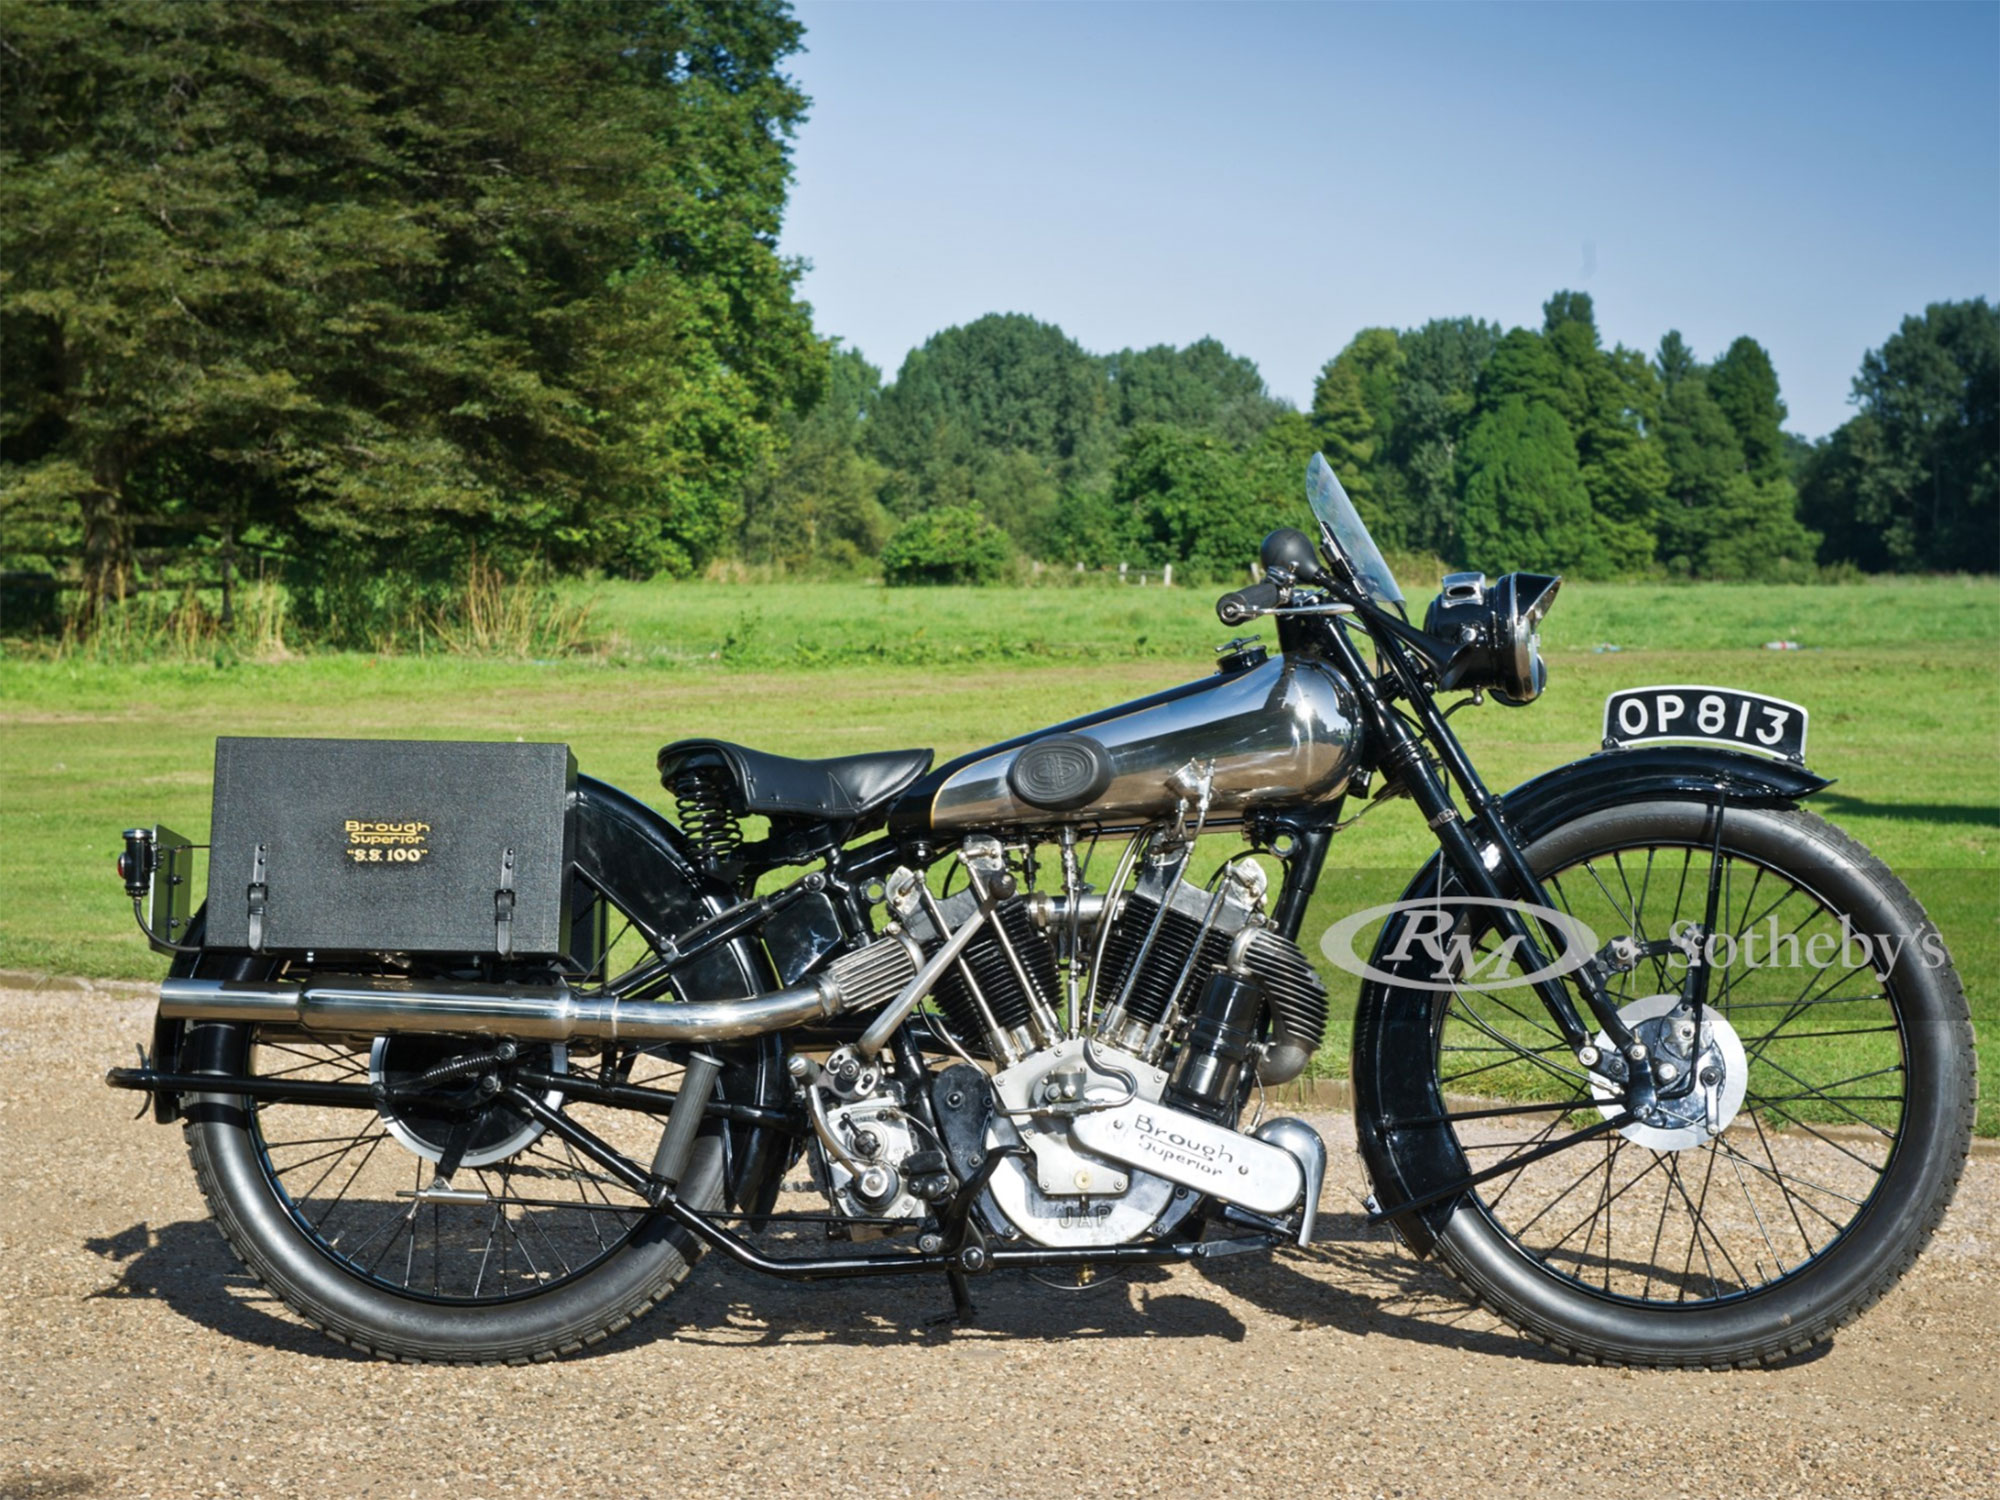 The British-made Brough Superior was known as the Rolls-Royce of motorcycles.